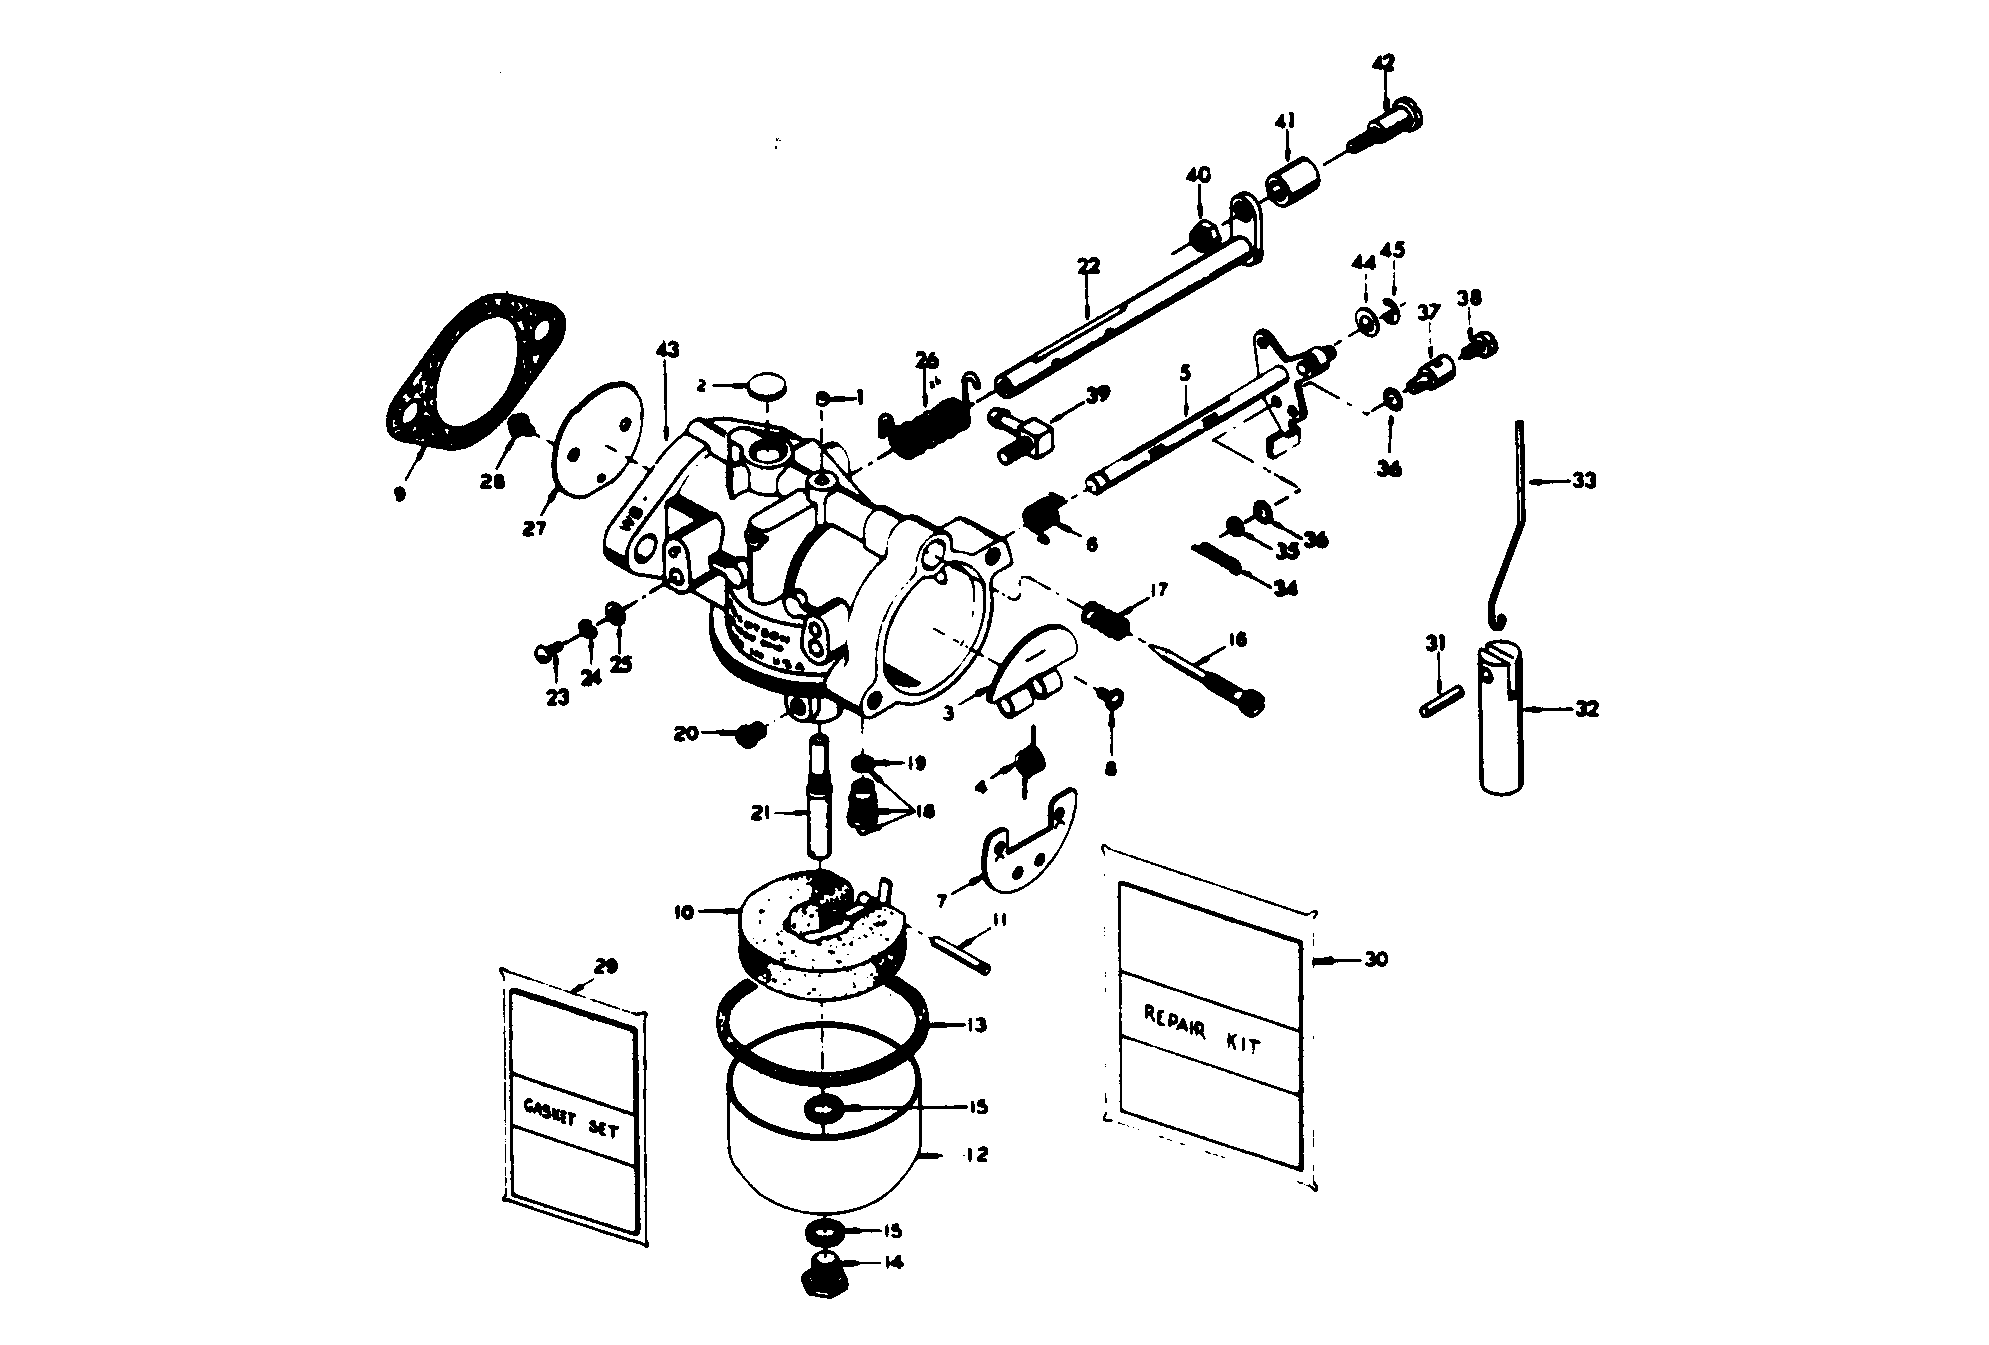 indmar 351 marine engine diagram toyota engine diagram